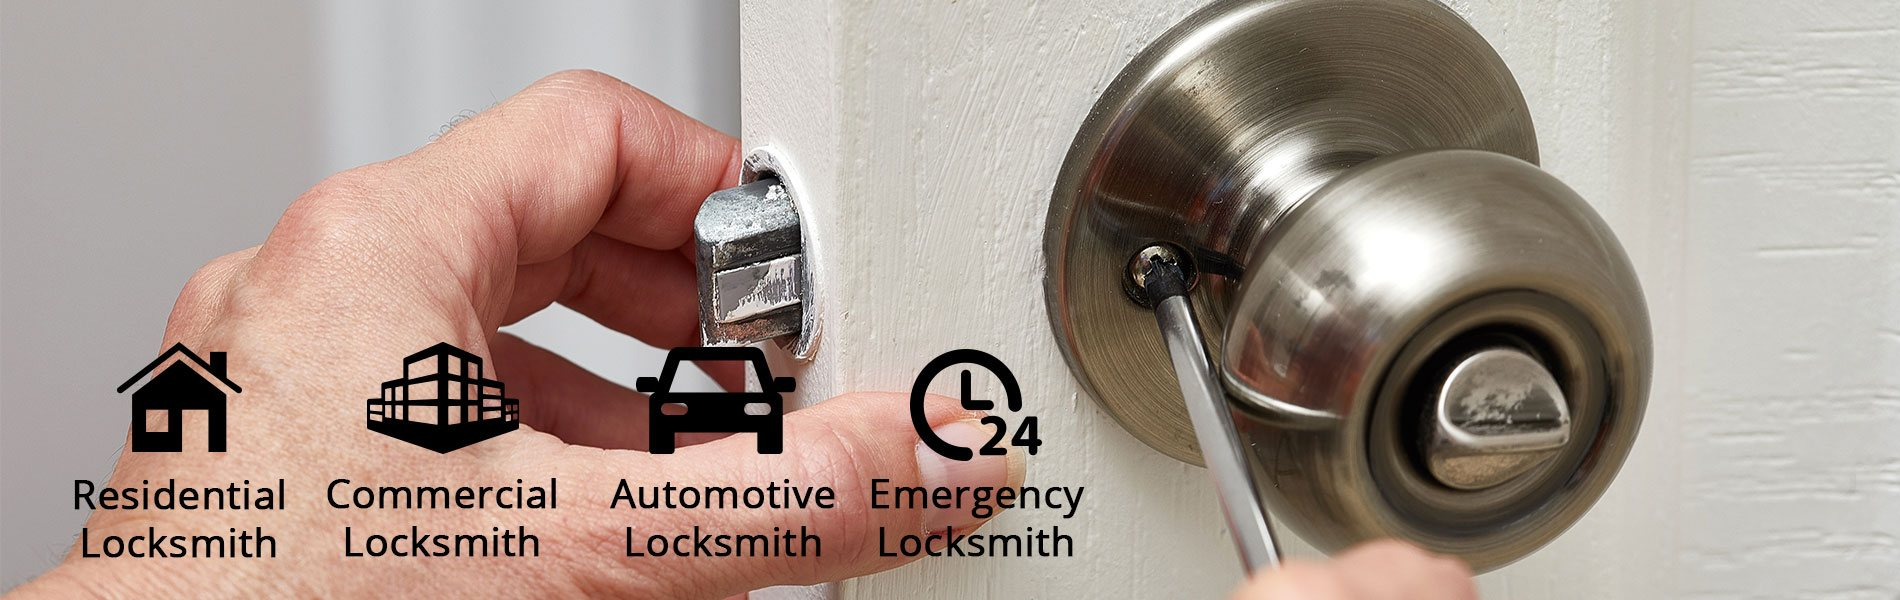 Cleveland Lock And Safe Cleveland, OH 216-654-9368